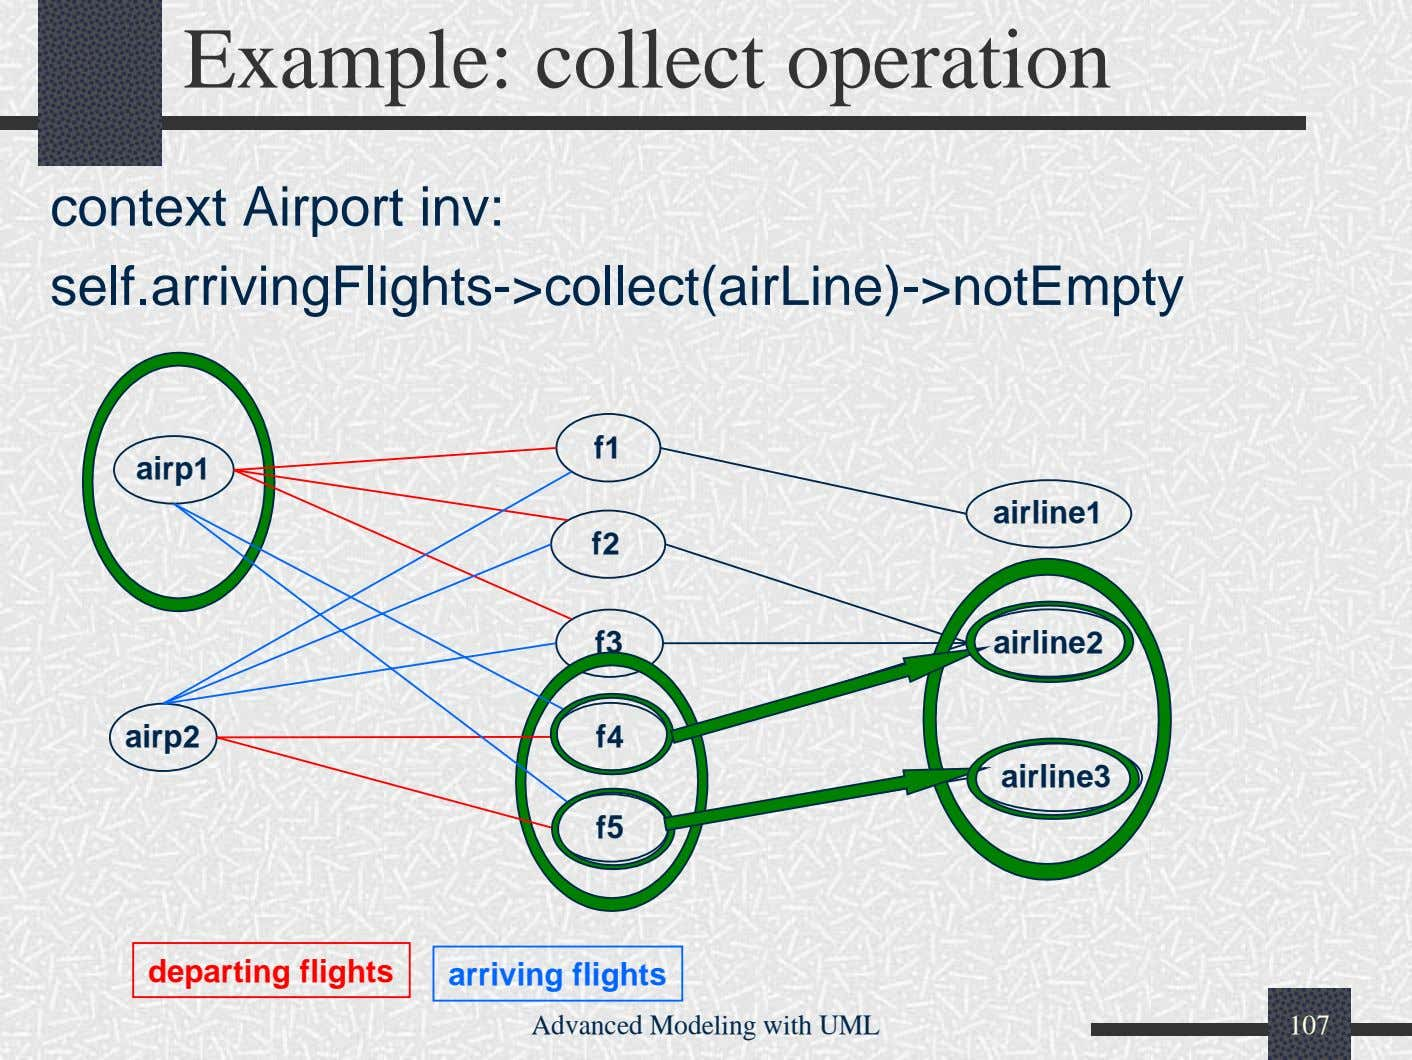 Example: collect operation context Airport inv: self.arrivingFlights->collect(airLine)->notEmpty f1 airline1